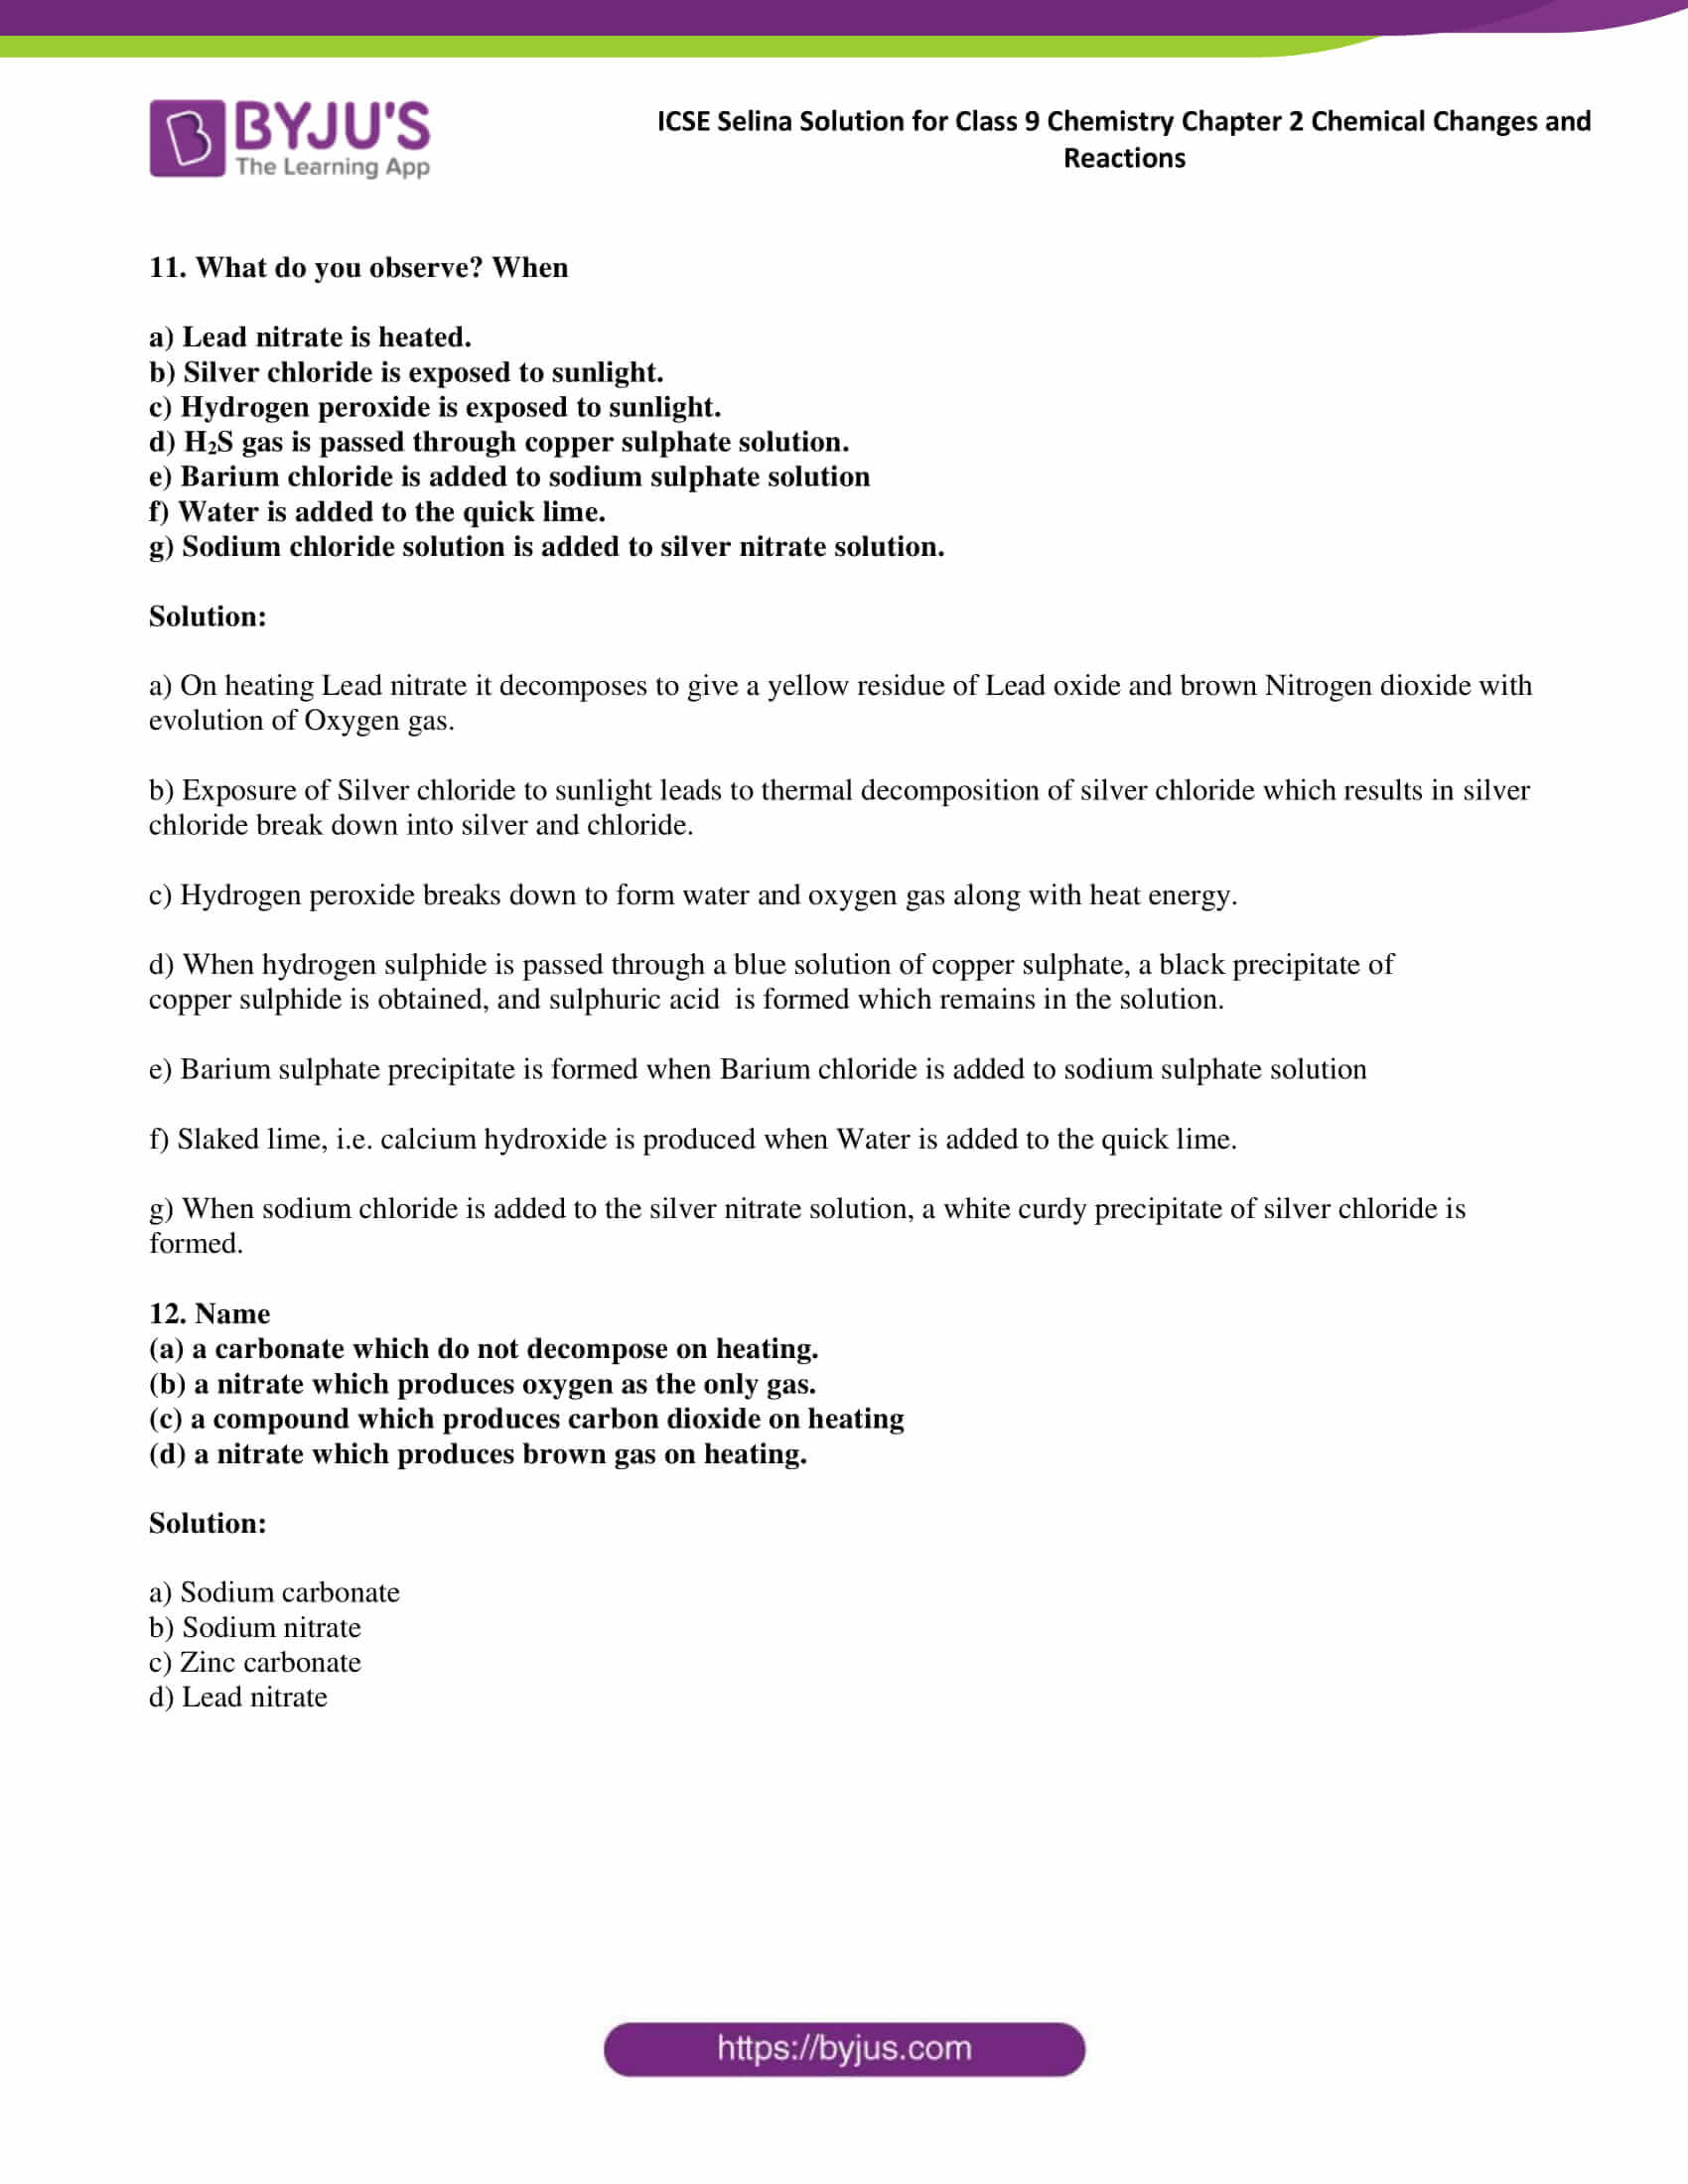 ICSE Selina Solution for class 9 Chemistry Chapter 2 Ex part 13